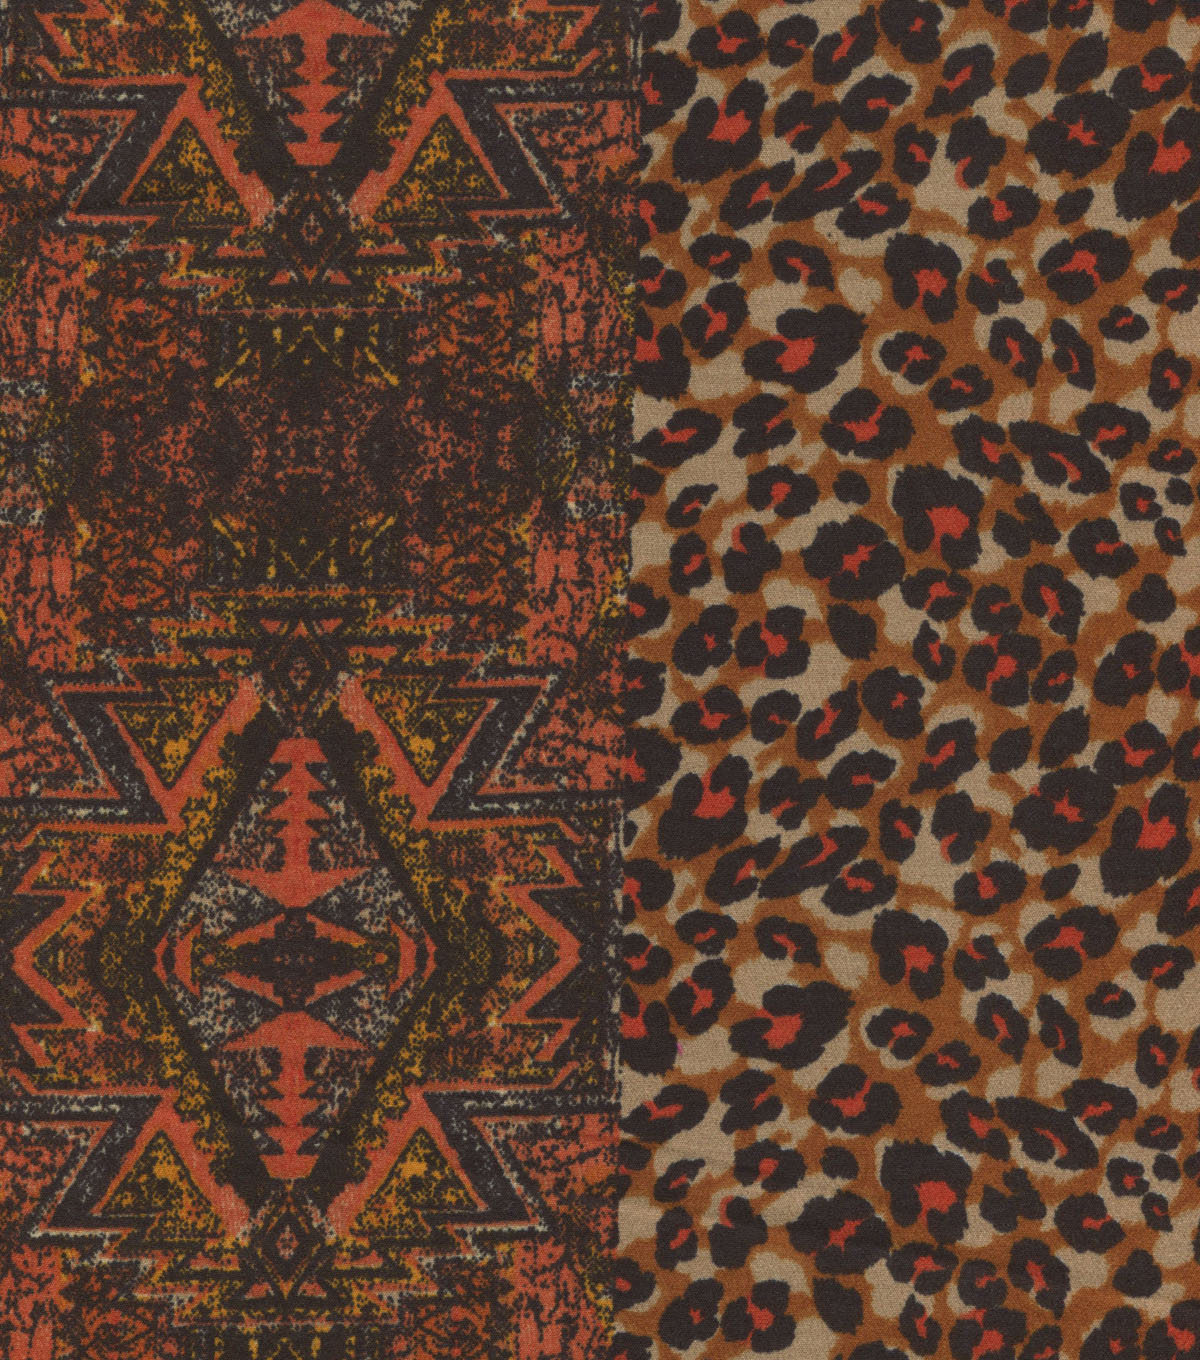 Ethnic Fabric - Polyester Crepe Print